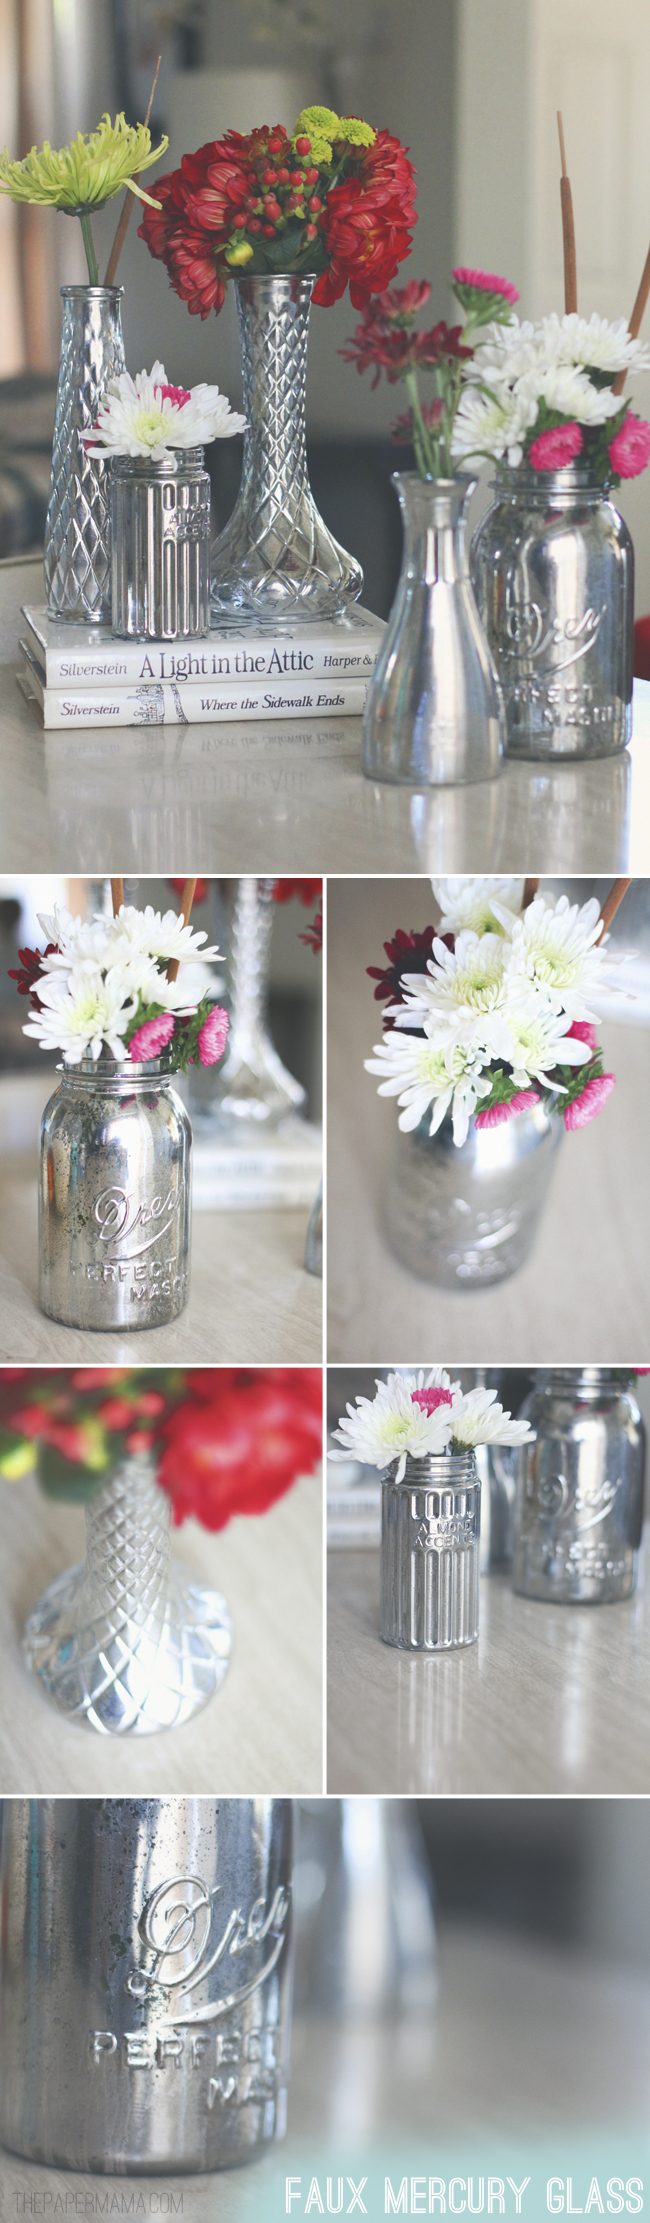 Faux Mercury Glass Vases DIY